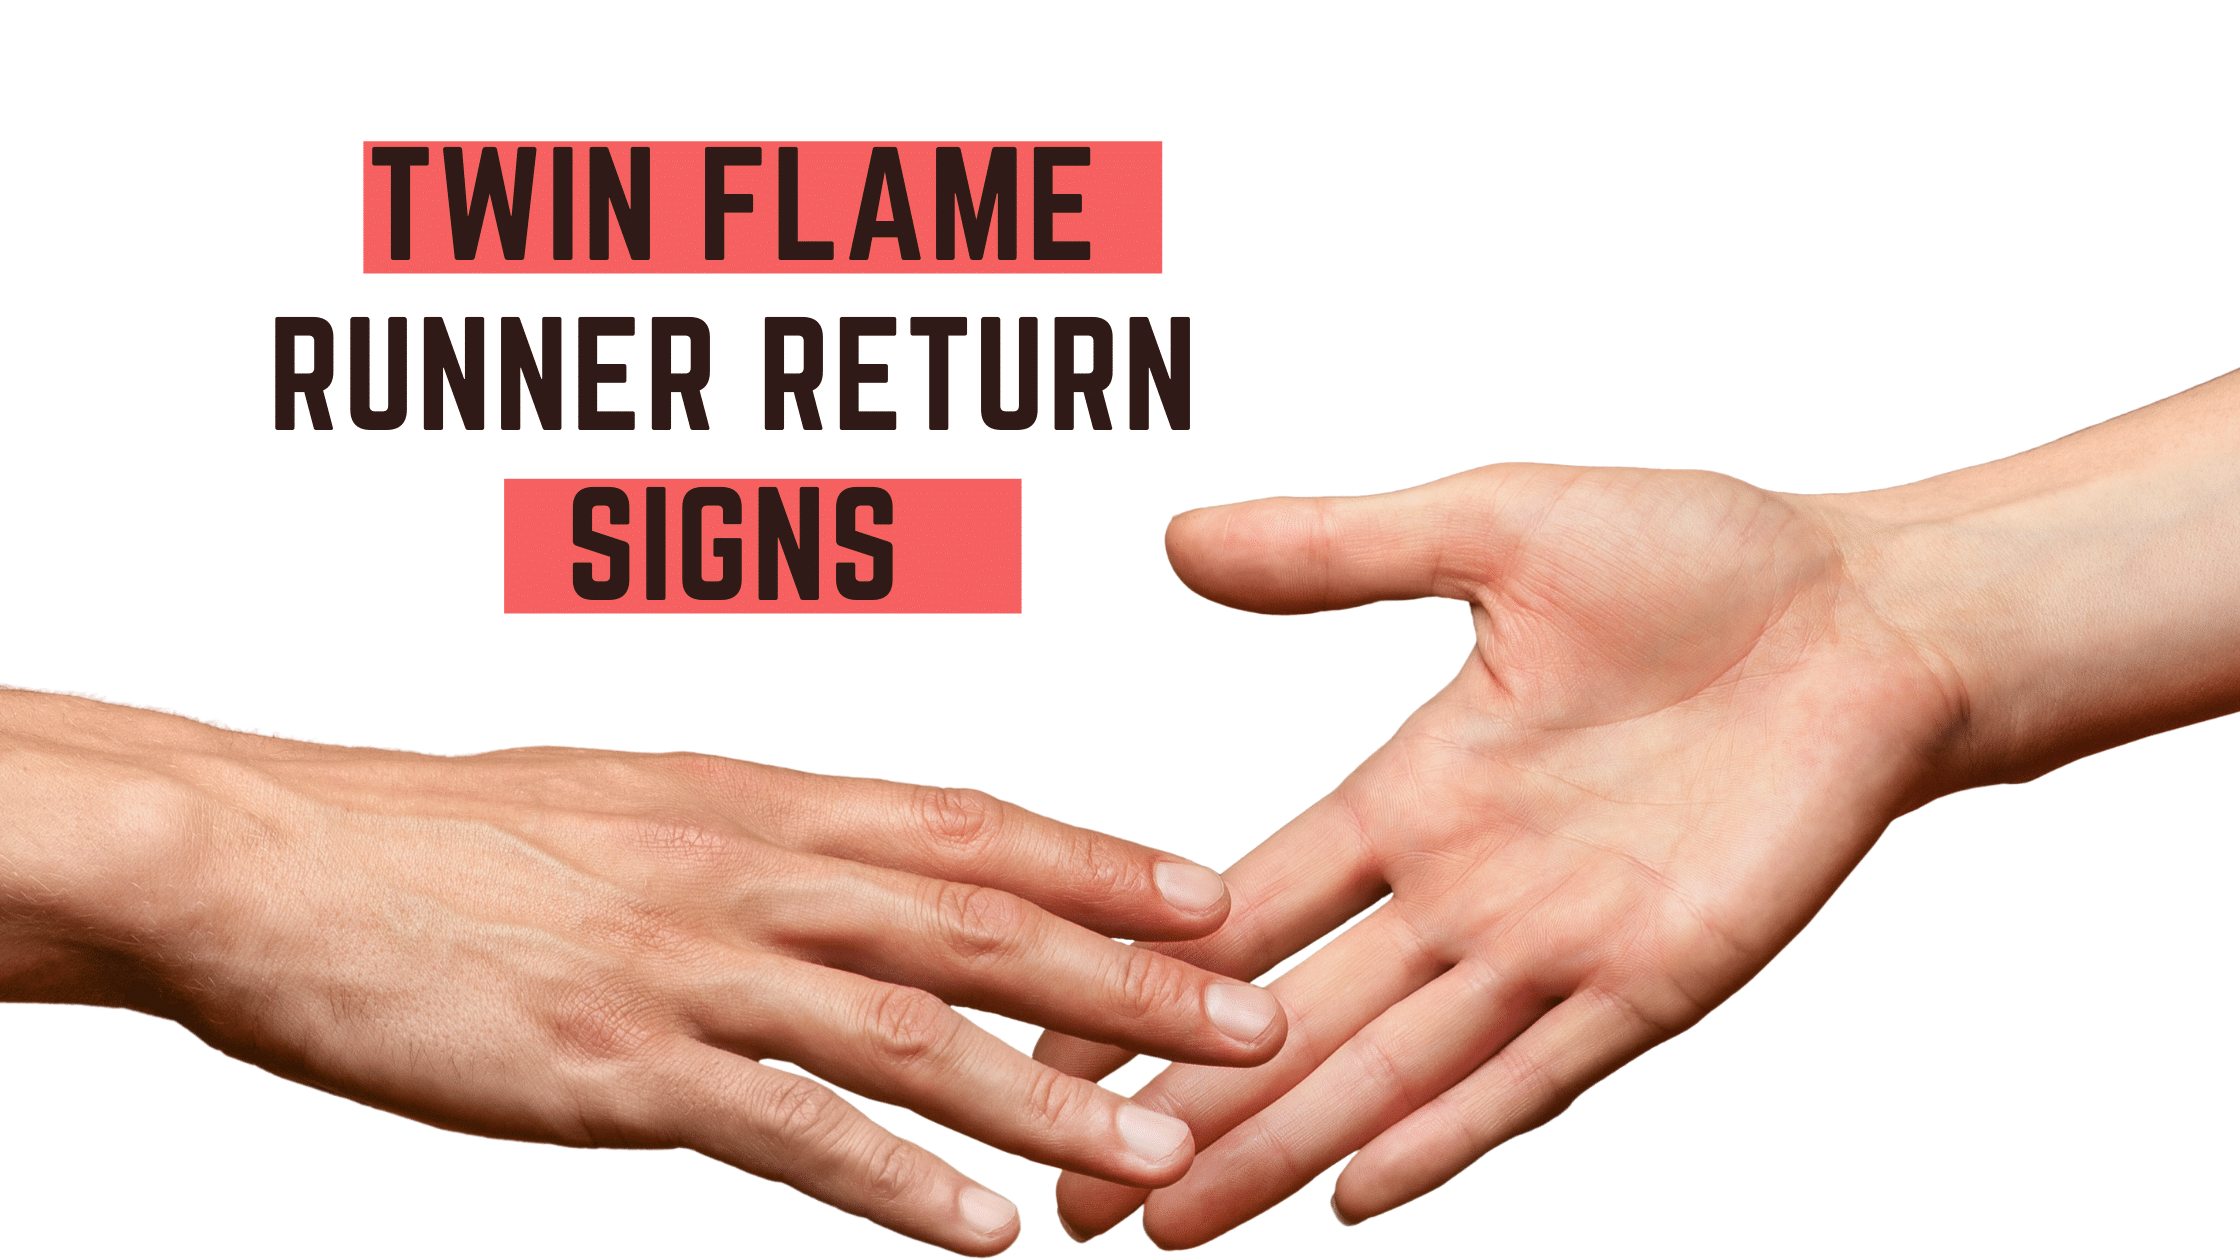 Twin Flame Runner Return Signs